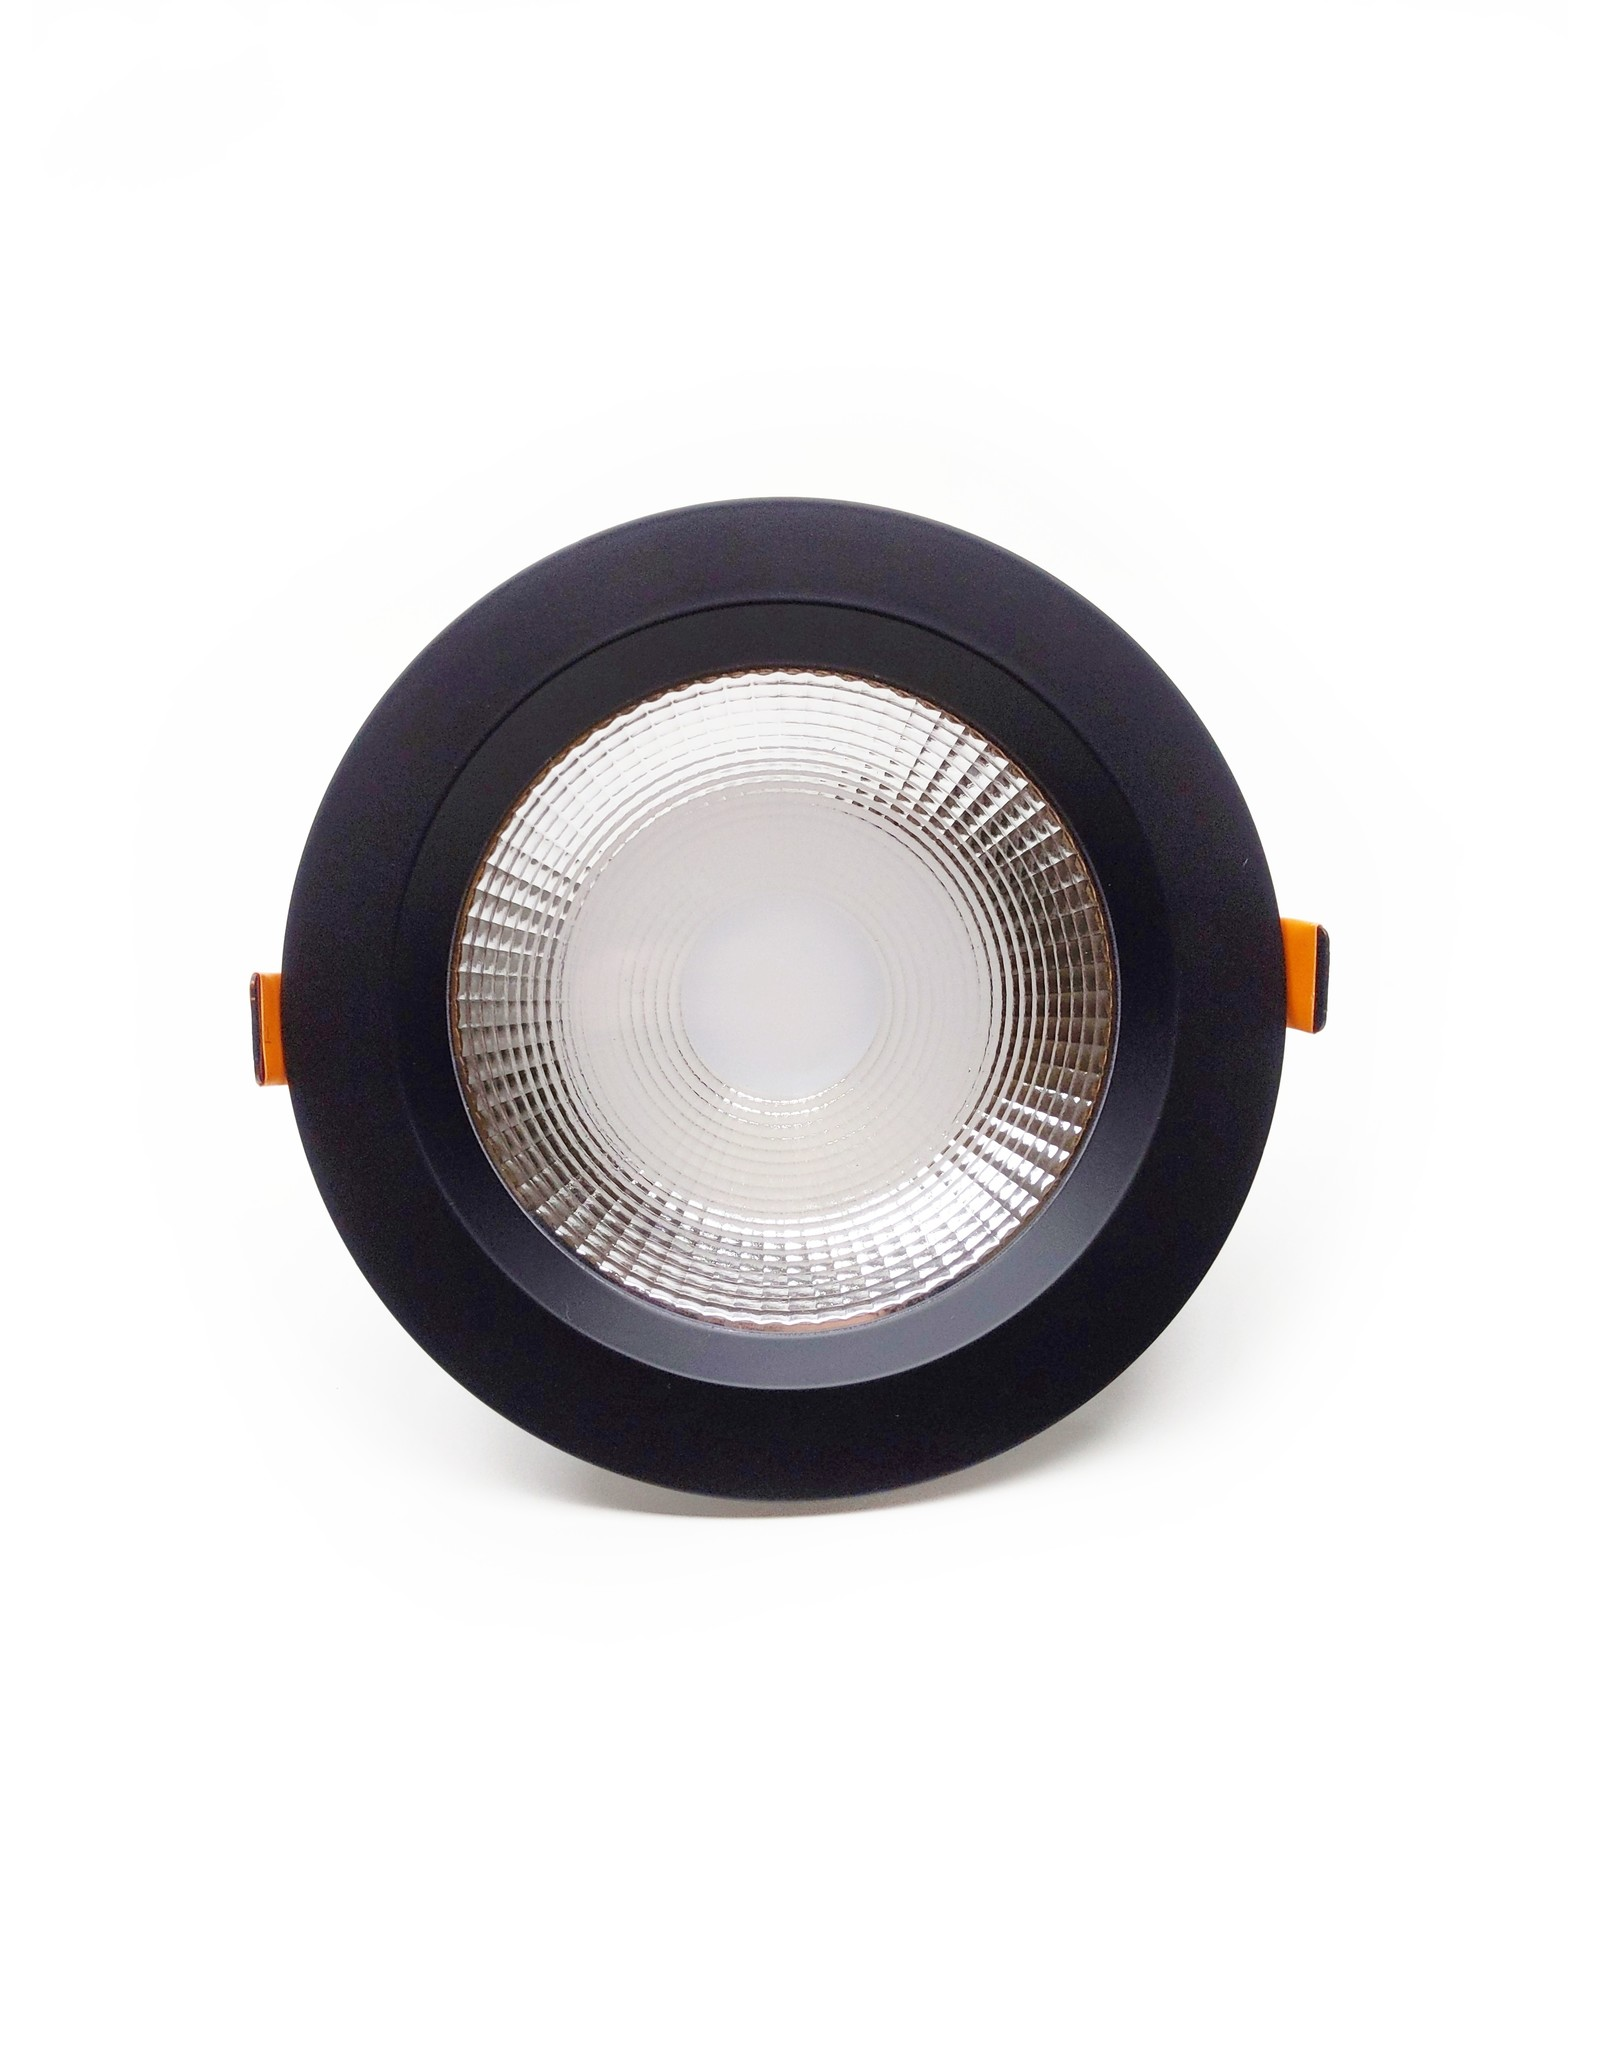 LedLed Geled Downlight Helder ZWART 3000k 190mm 8-20W